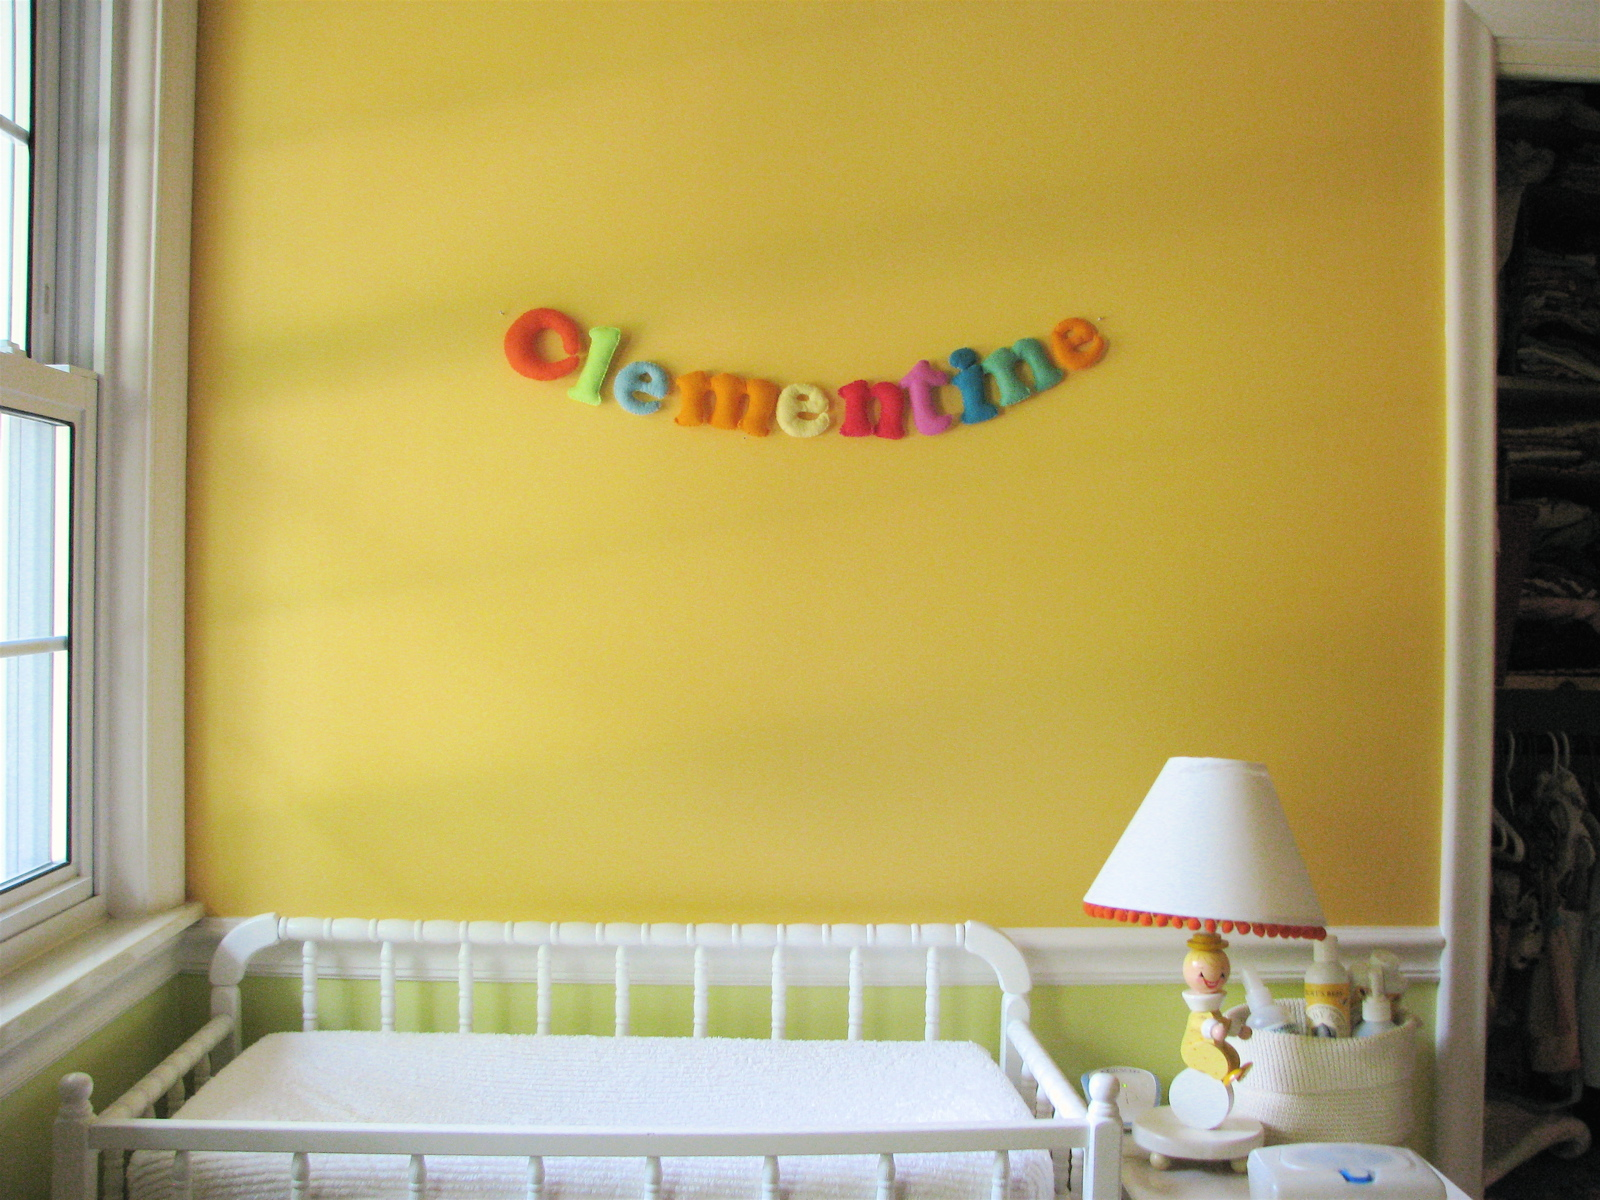 Felt Letters for Clementine\'s Room - Made By Rae